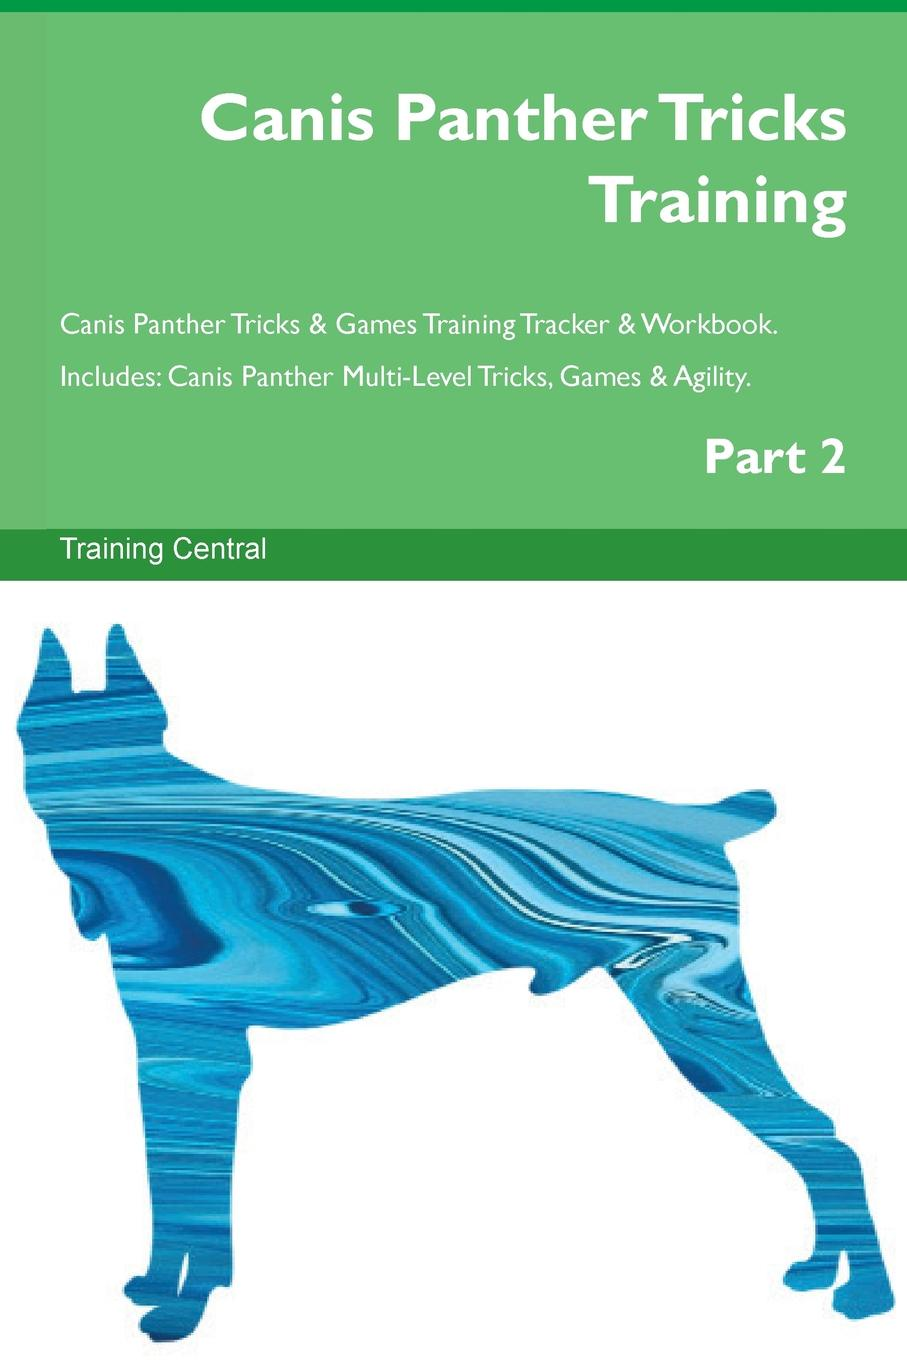 Training Central Canis Panther Tricks Training Canis Panther Tricks . Games Training Tracker . Workbook. Includes. Canis Panther Multi-Level Tricks, Games . Agility. Part 2 цена и фото